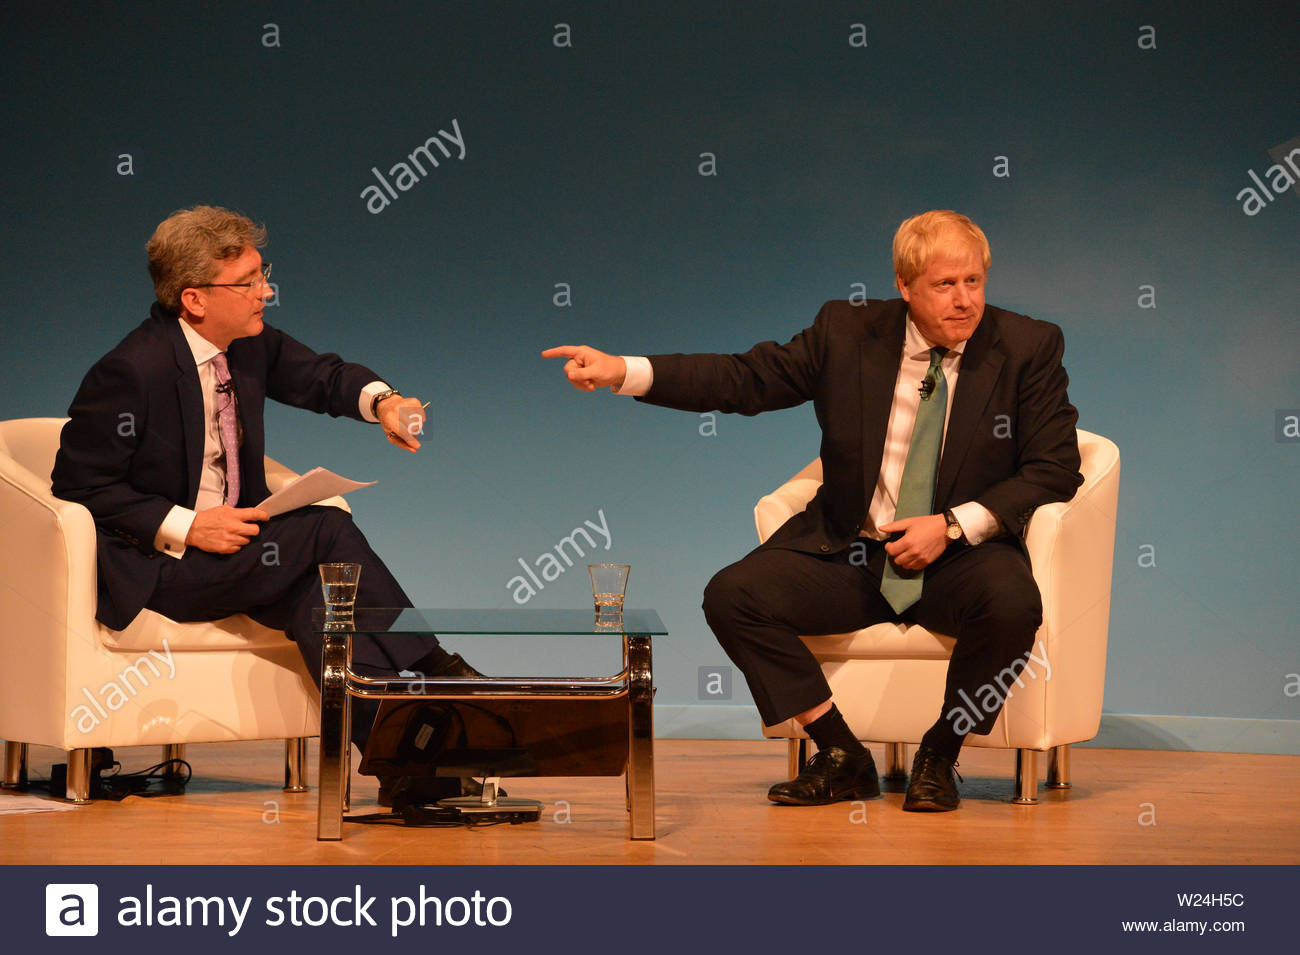 Perth, UK. 5 July 2019. Pictured: Boris Johnson MP.  Conservative leadership contenders Boris Johnson and Jeremy Hunt are to face Scottish party members at a hustings event in Perth.  The hustings in Perth is the latest in a series of events around the UK which see the two candidates make a speech to local members before taking questions from a host and the audience.  Party members should receive their ballots in the coming days, with the winner to be announced on 23 July. Credit: Colin Fisher/Alamy Live News Stock Photo